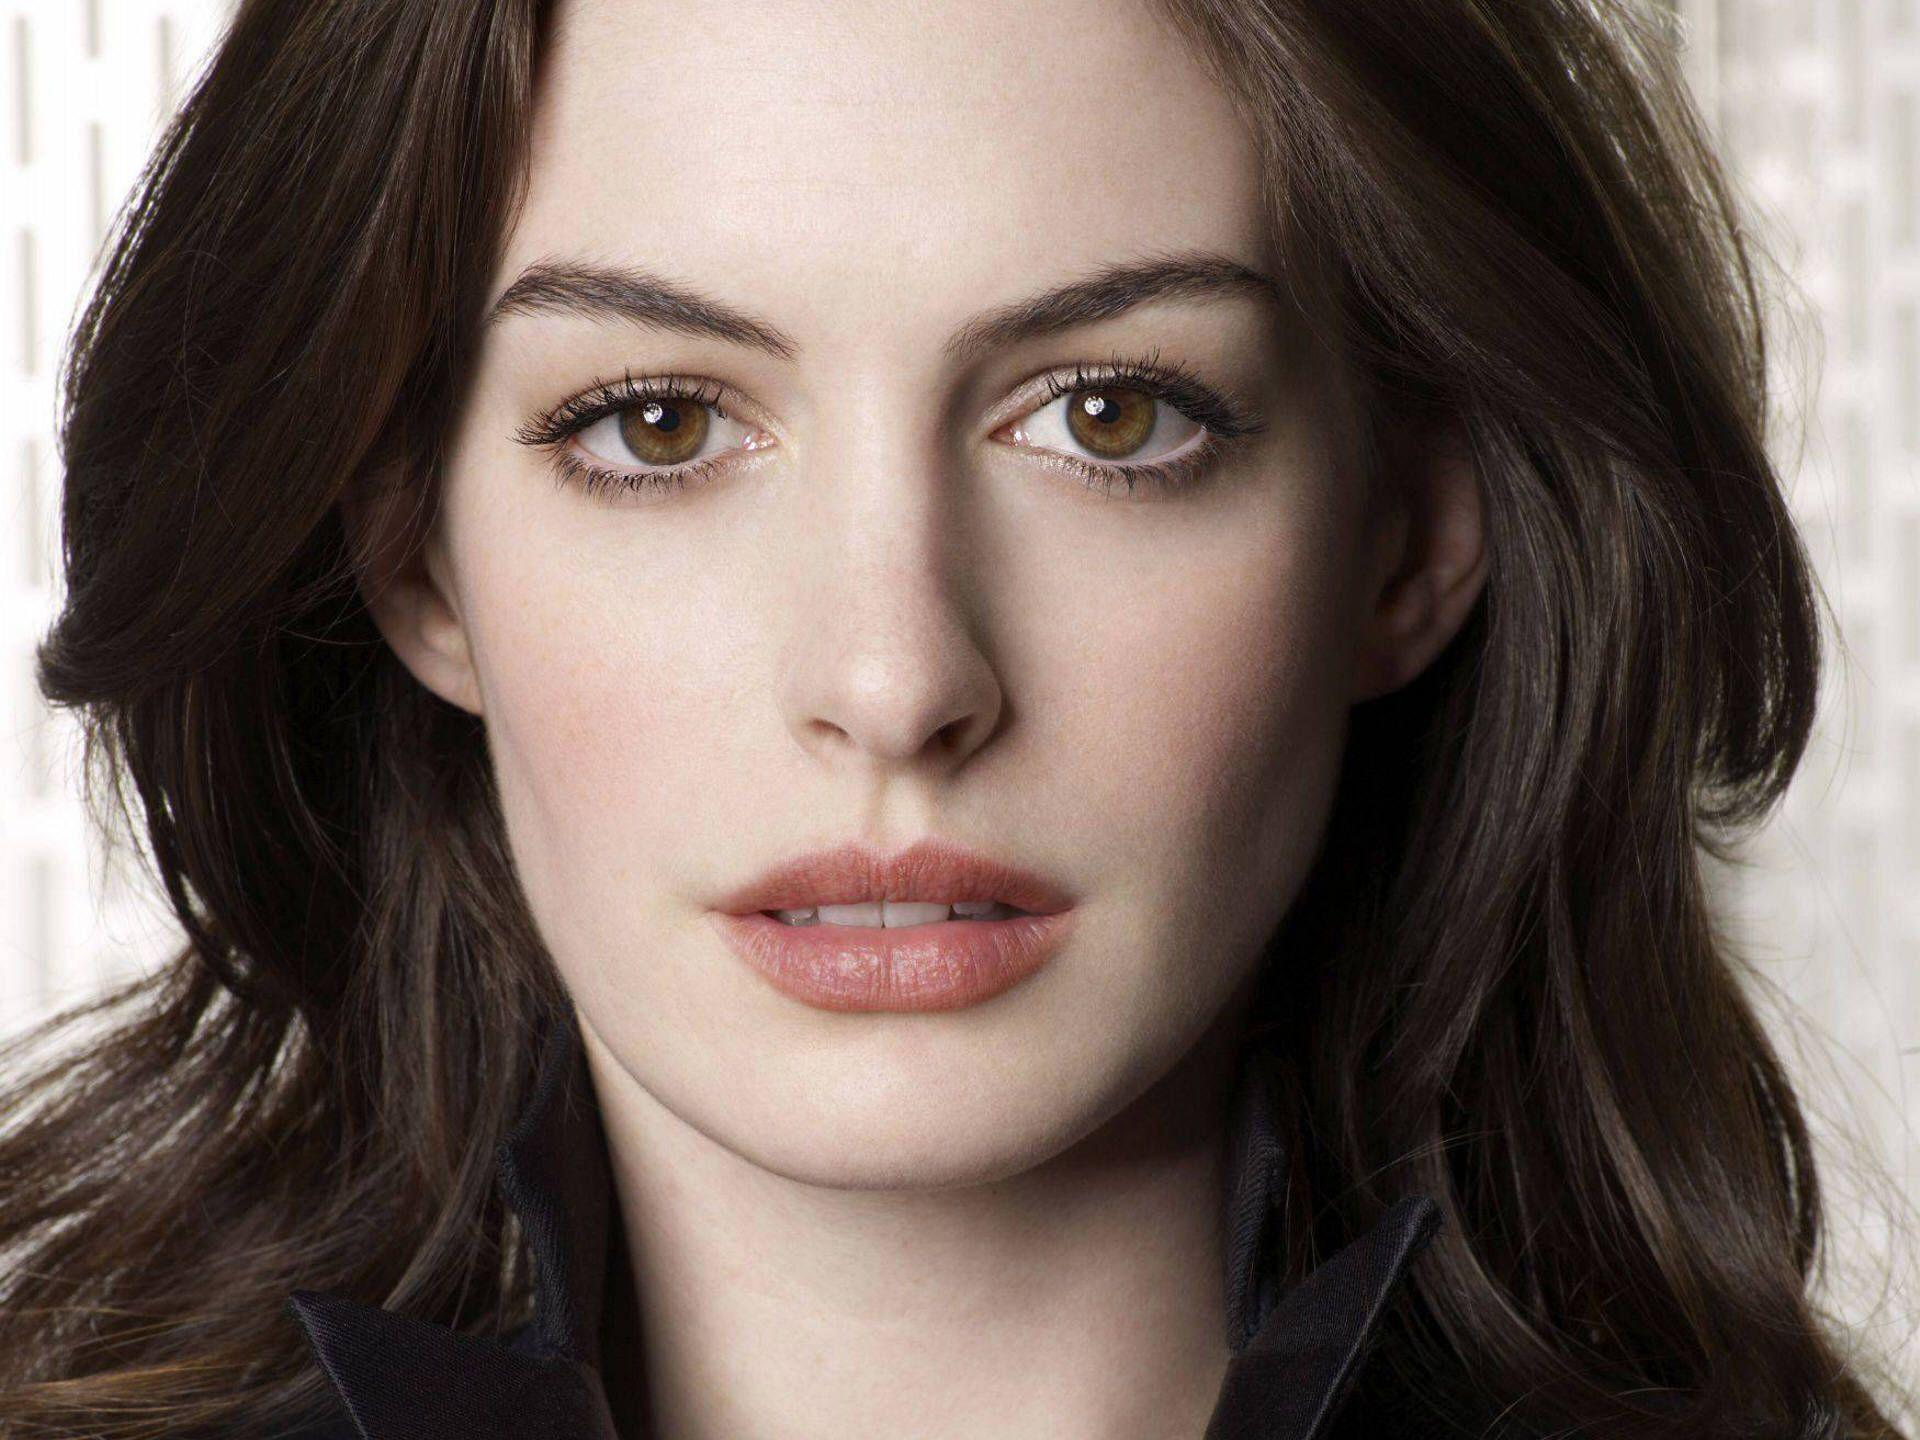 Anne Hathaway Wallpapers - Wallpaper Cave